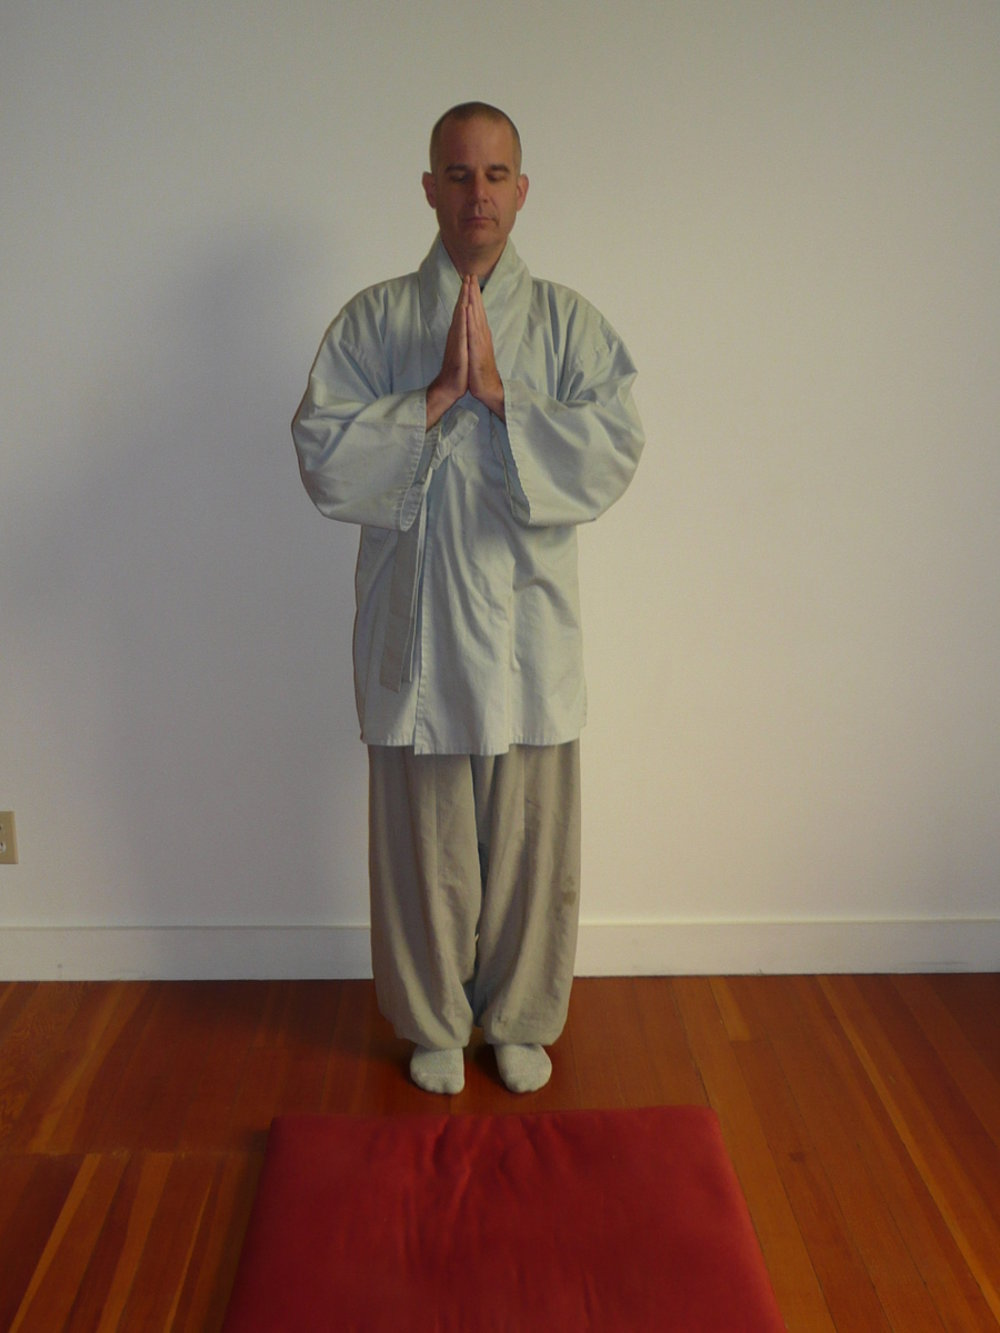 1. Put your hands in hapchang (palms together as shown at right), feet together -